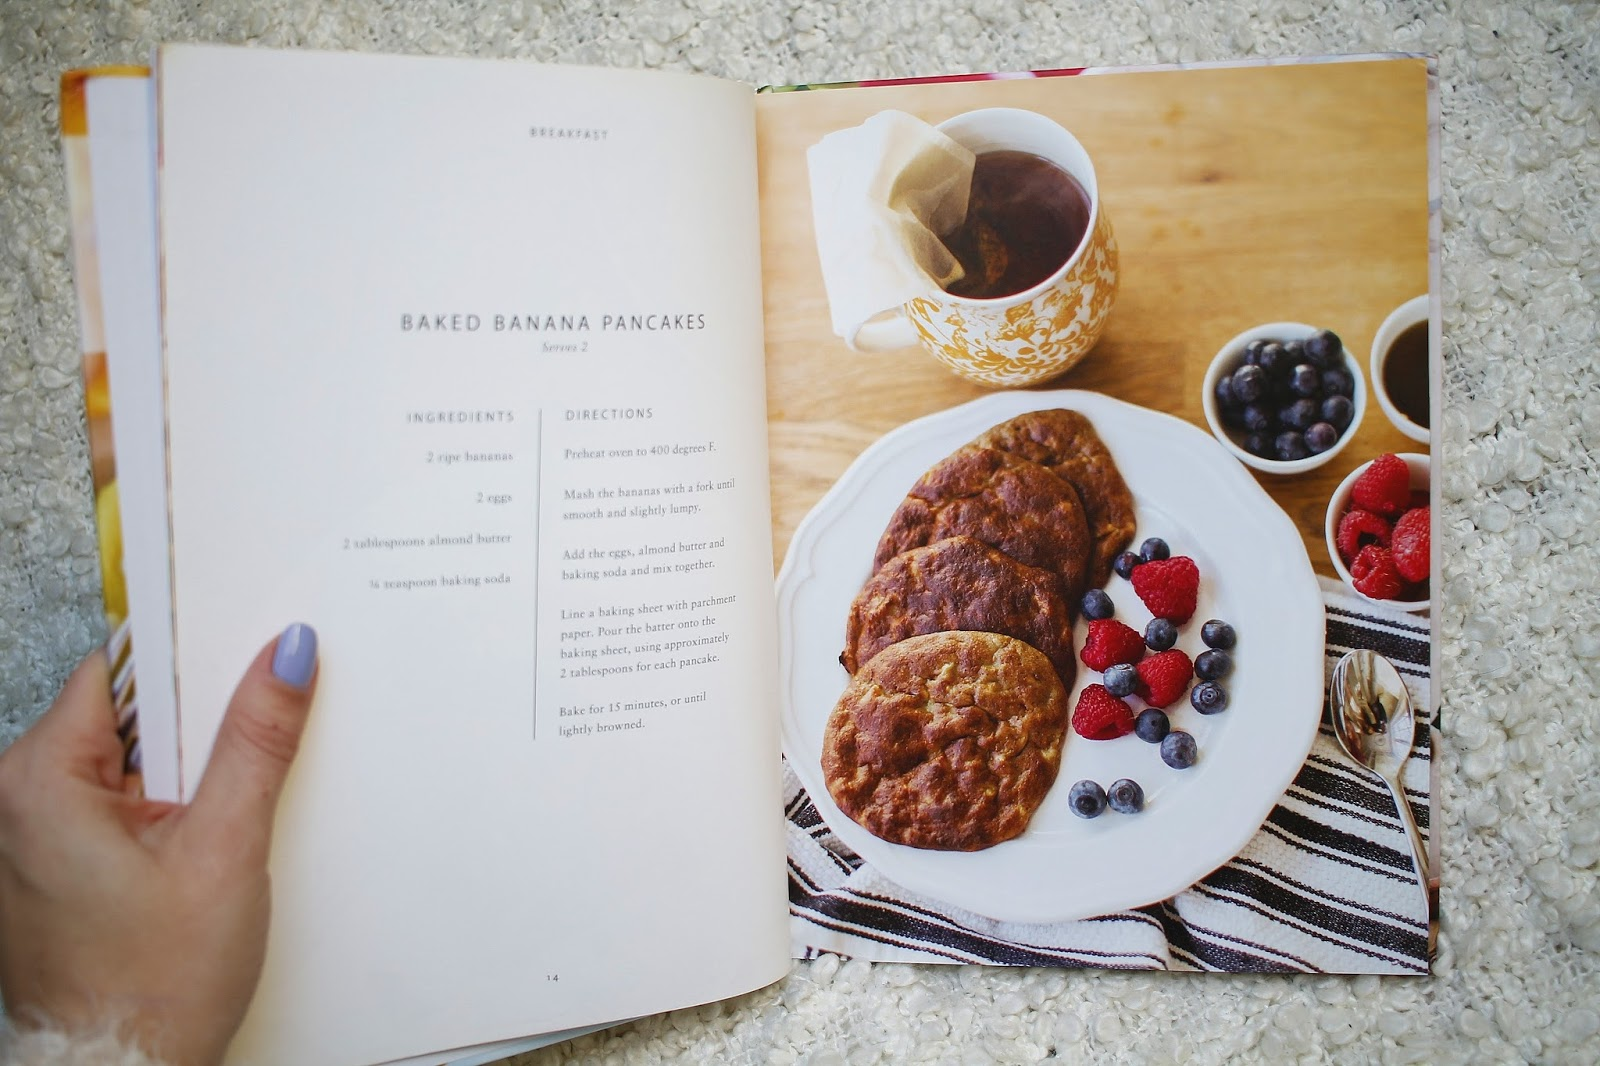 Mimis healthy delicious cookbook truly mar if i had to name a downside of the cookbook i think it would be the price yes all the recipes are carefully written down and the photography is beautiful forumfinder Images